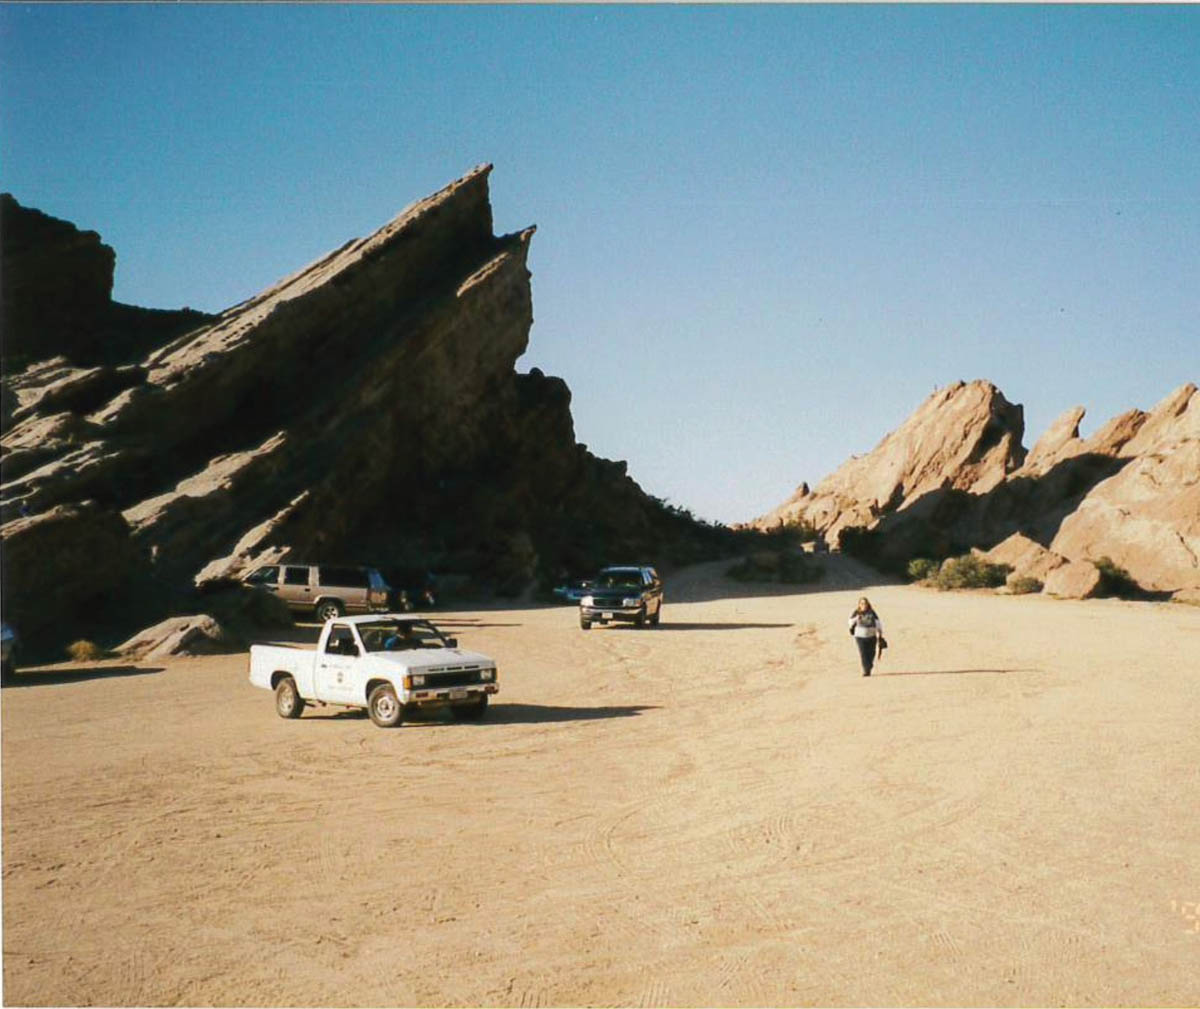 The very down-to-earth Vasquez rocks portray the surface of alien planets for the media